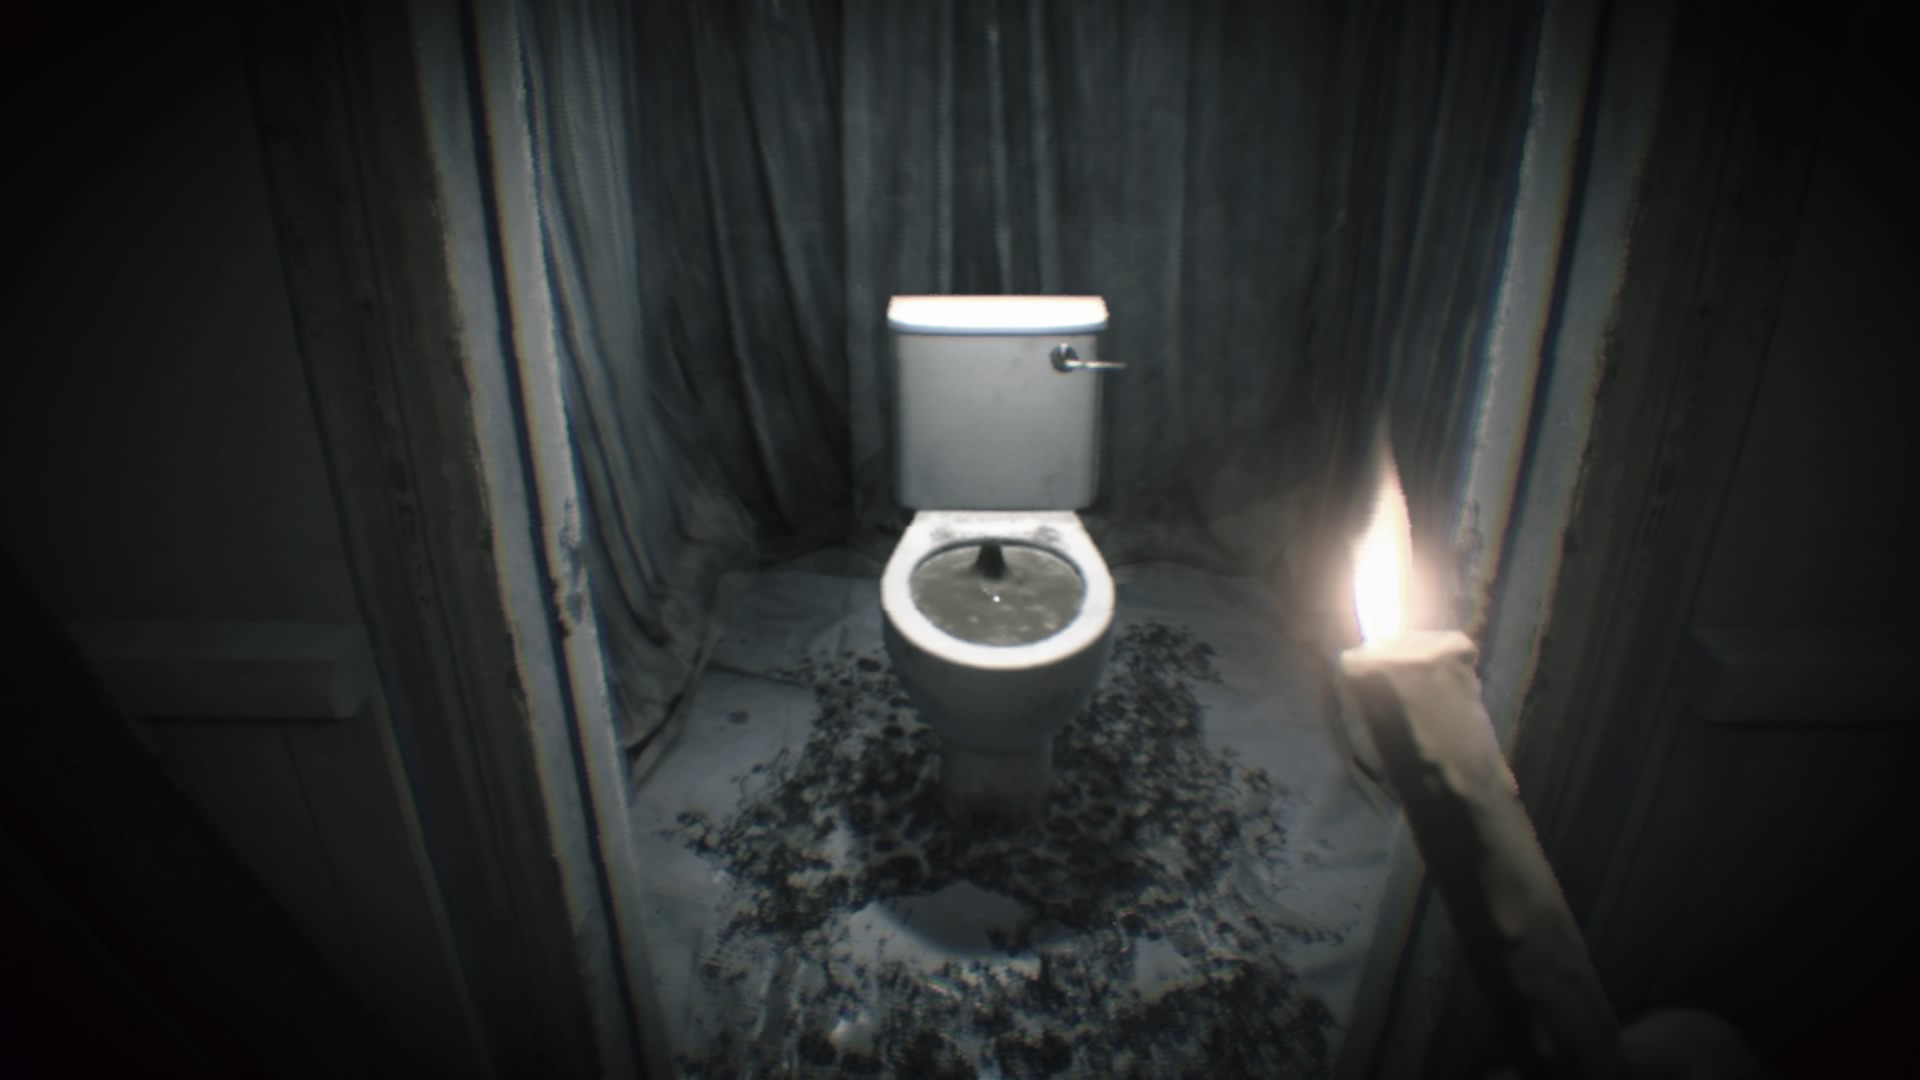 Escape The Bathroom Lock Code resident evil 7 guide and walkthrough 4-2 happy birthday vhs tape